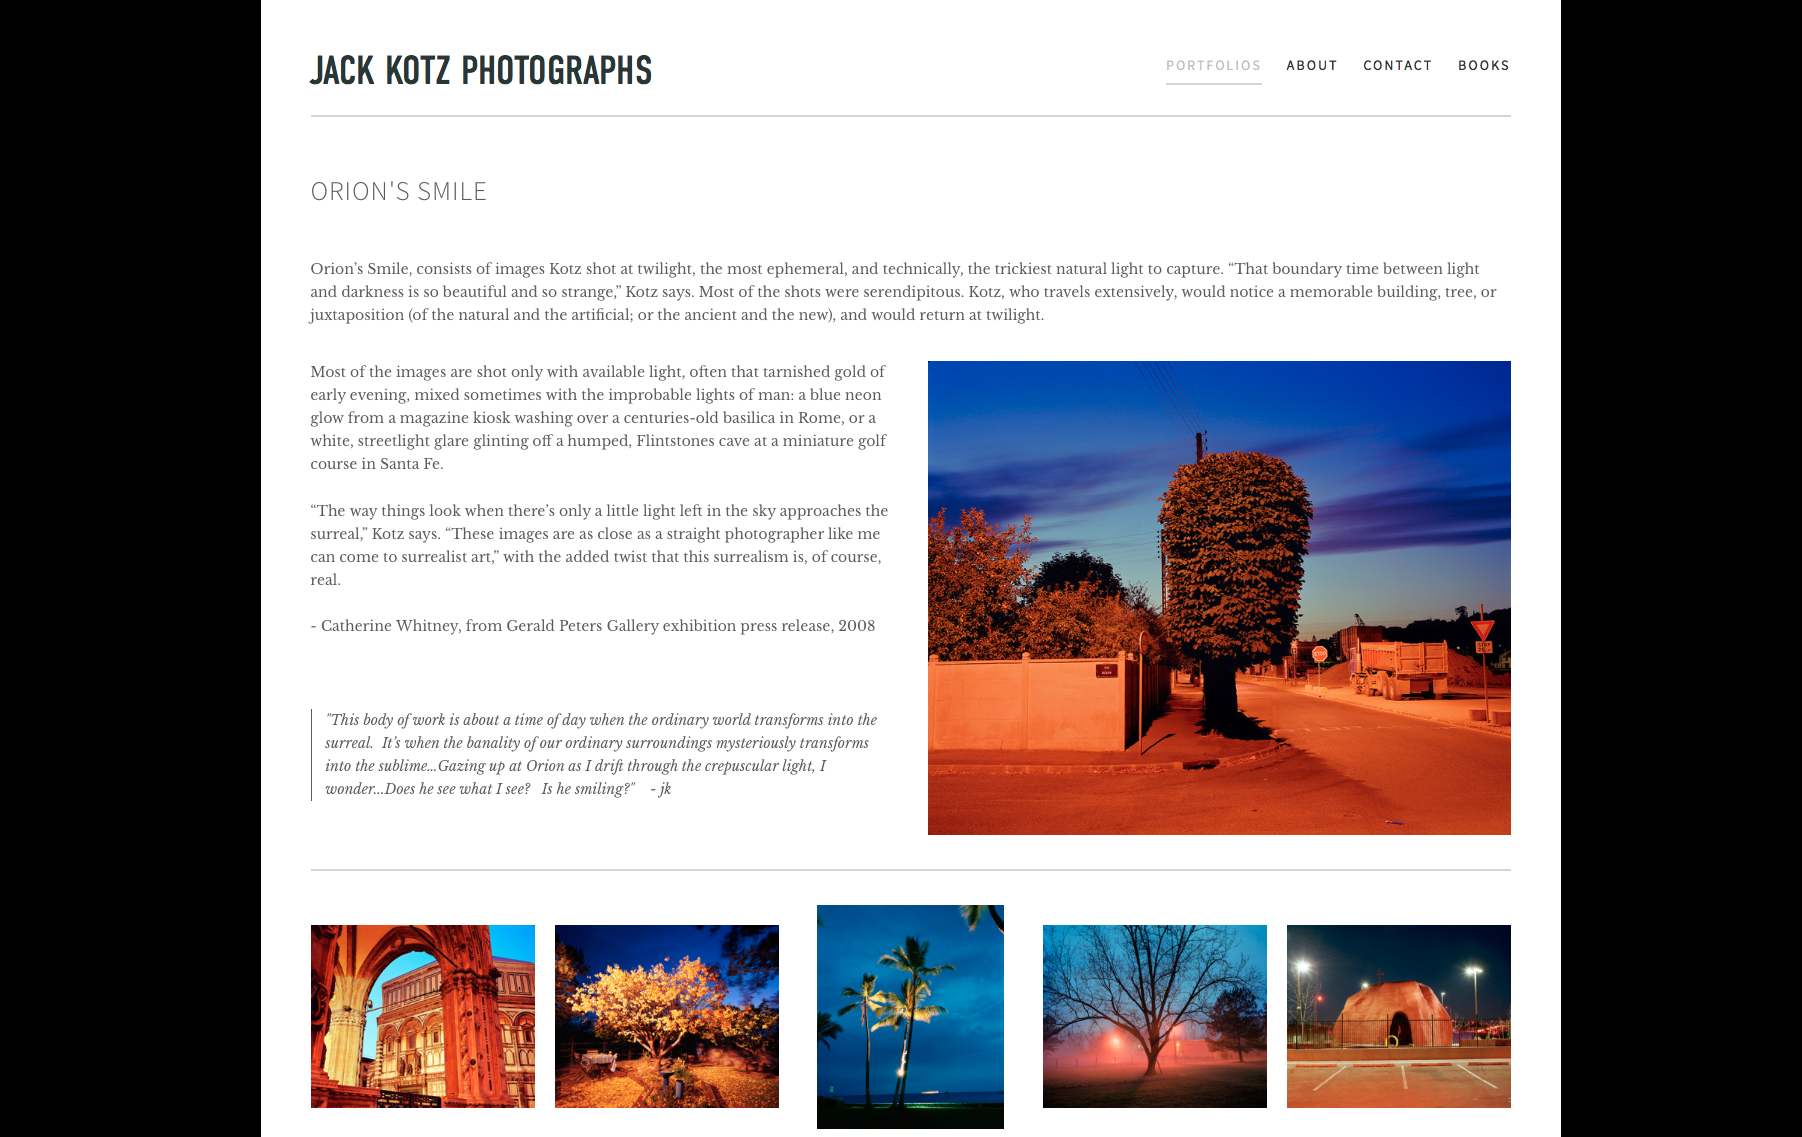 A professional and fine art photographer for over 30 years, Jack Kotz was in need of an updated portfolio site that would showcase is vast archive of images. The expandable, image heavy design of this website is meant to allow the viewer to engage the images similar to a gallery experience, without being inundated by the text and information for each body of work or image.